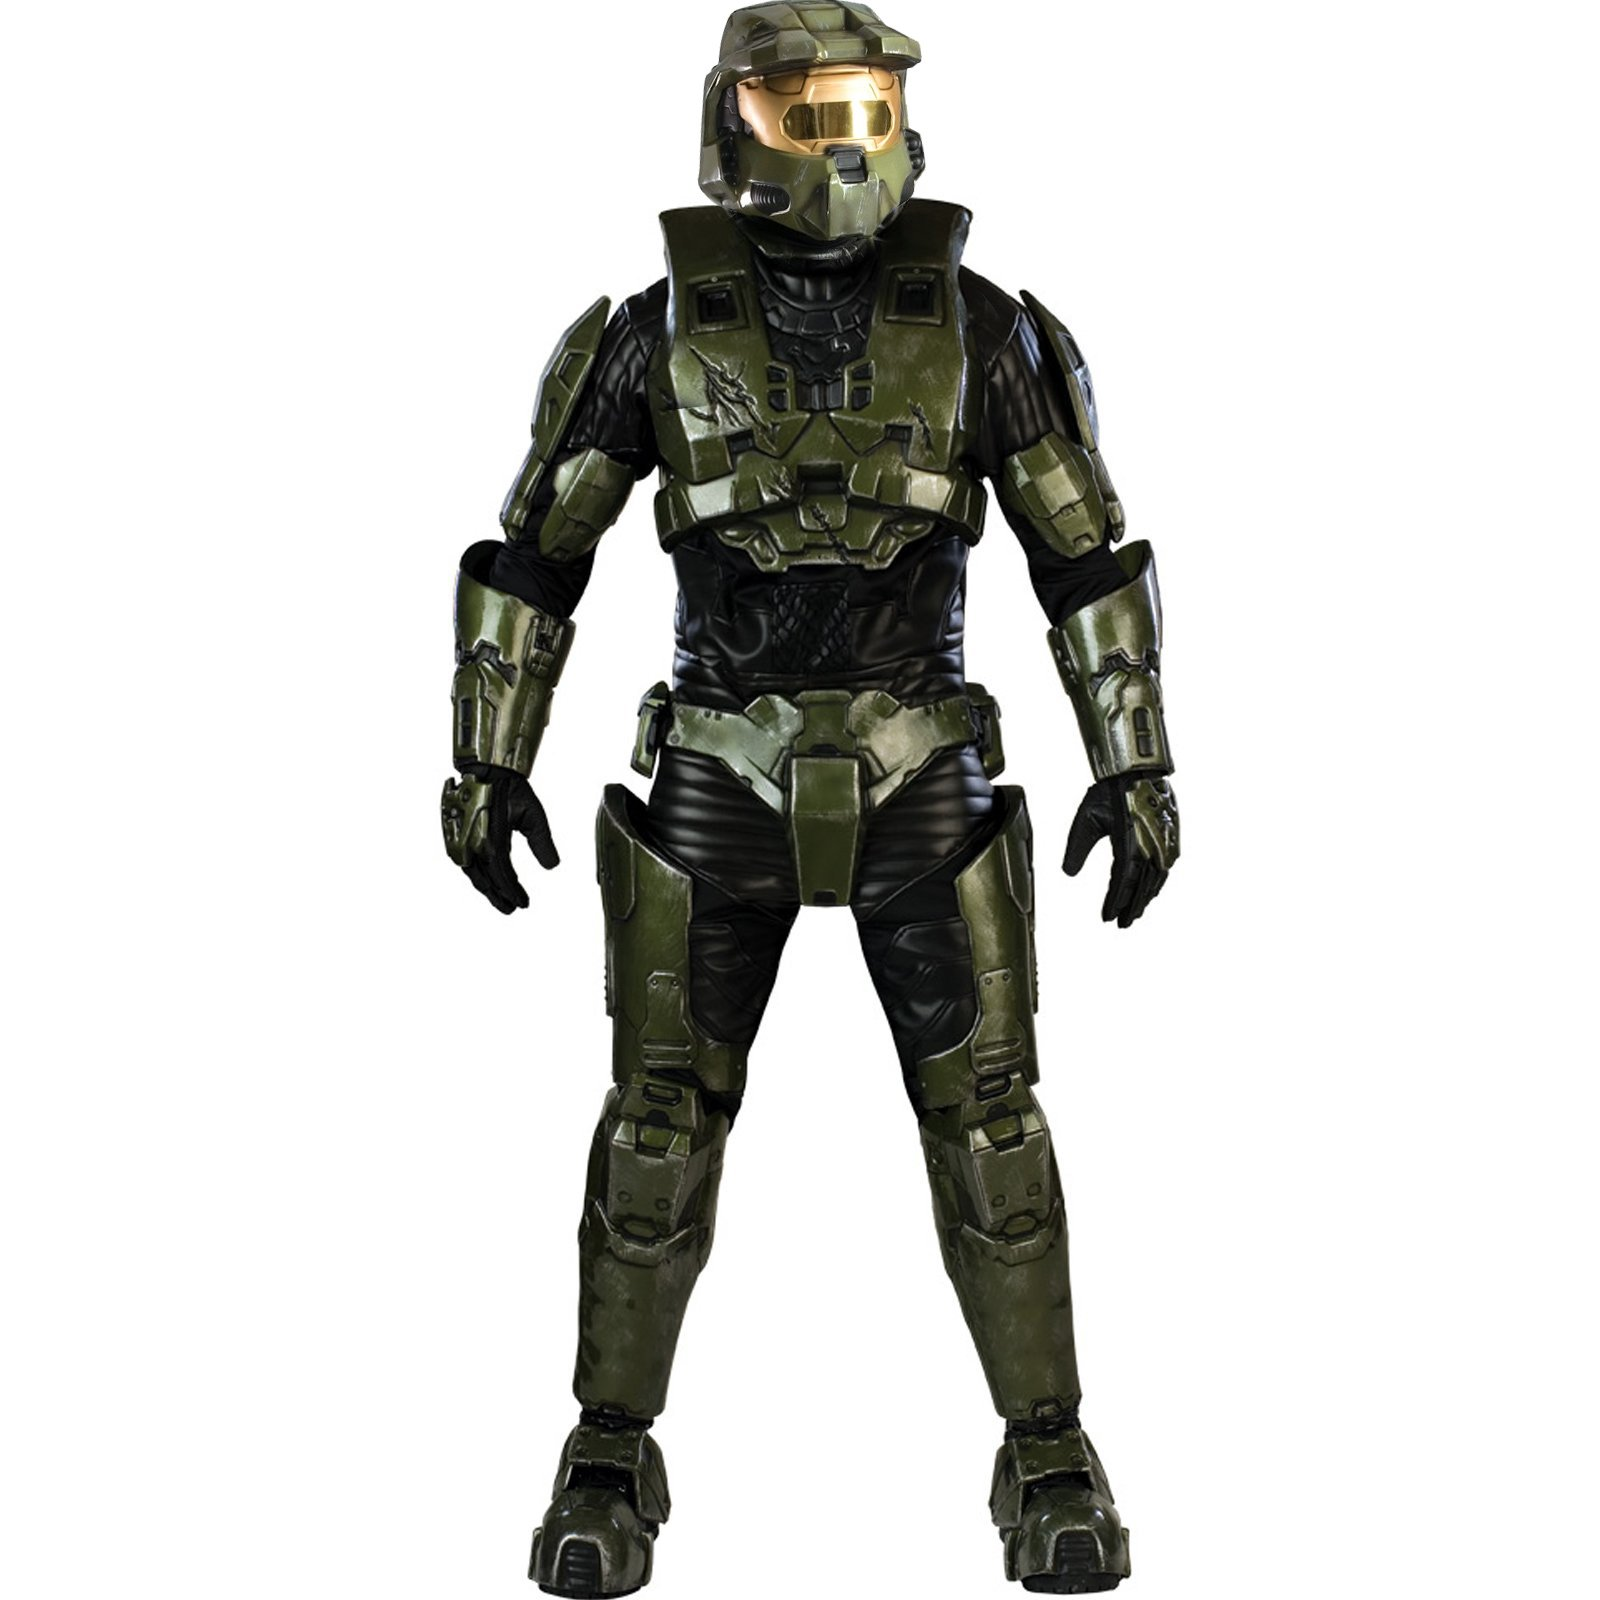 Halo Master Chief Collector's Adult Halloween Costume